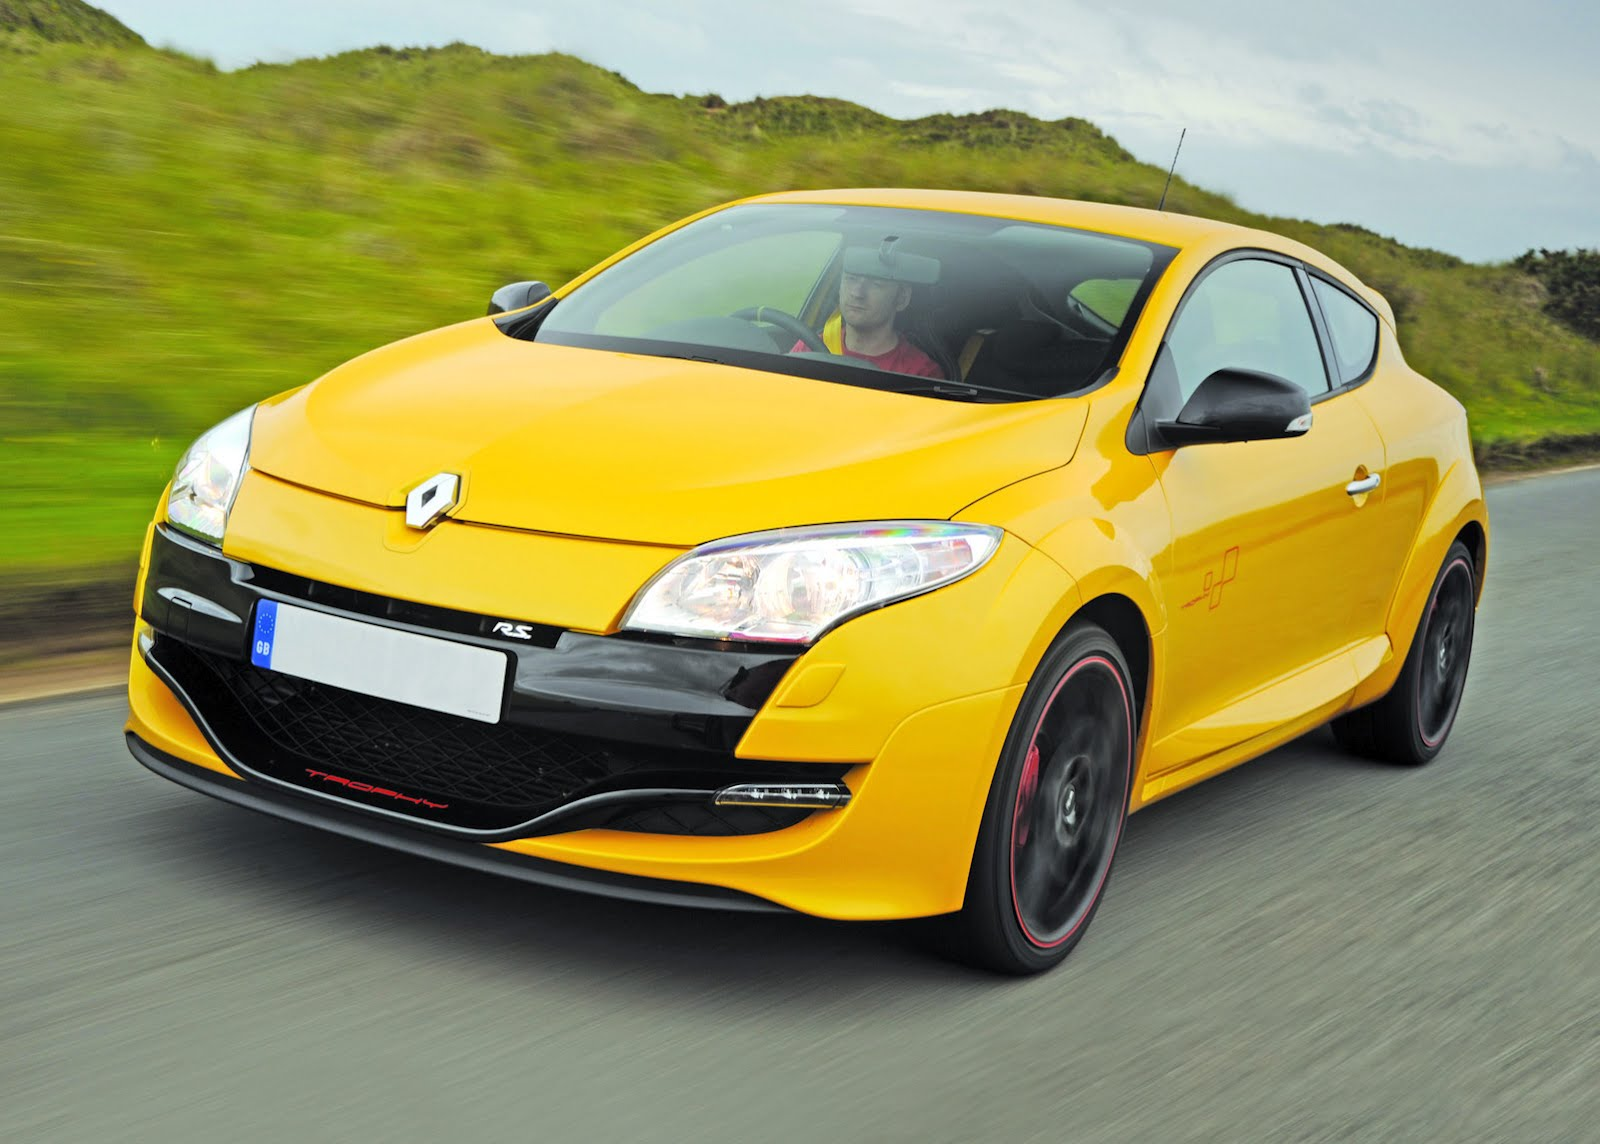 renault megane rs 265 tuned to over 300 horsepower. Black Bedroom Furniture Sets. Home Design Ideas